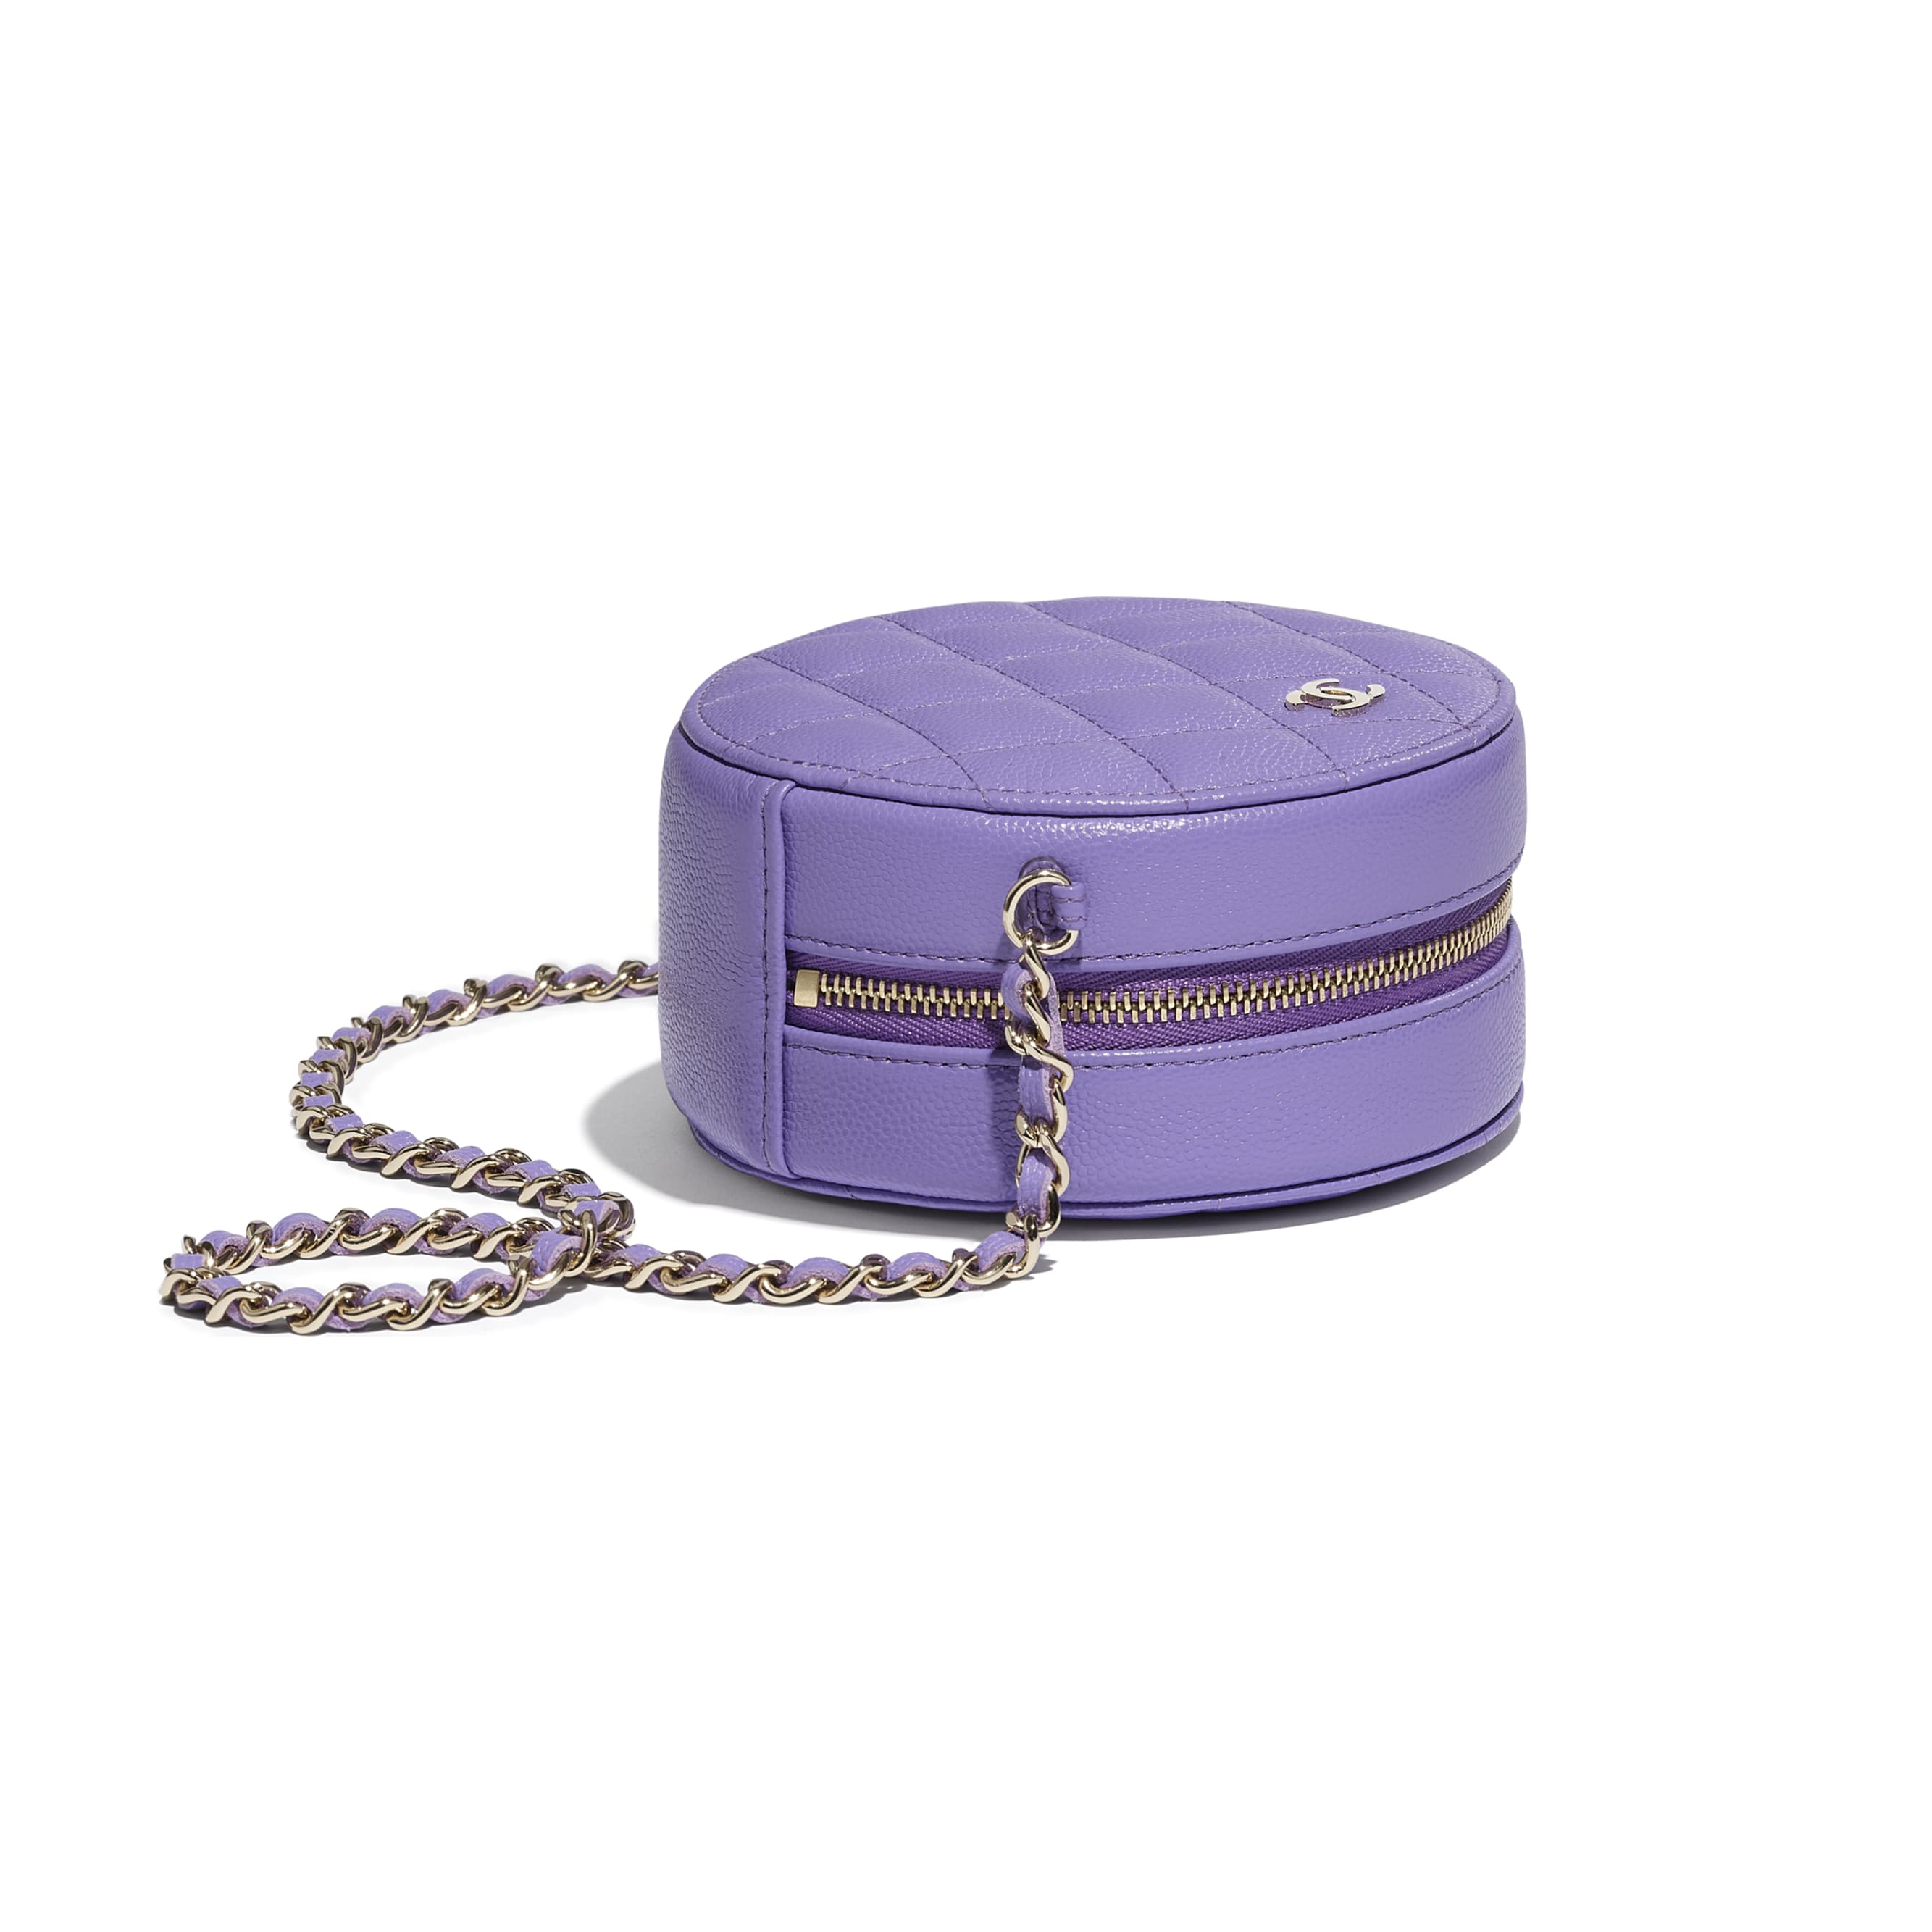 Classic Clutch With Chain - Purple - Grained Calfskin & Gold-Tone Metal - CHANEL - Extra view - see standard sized version